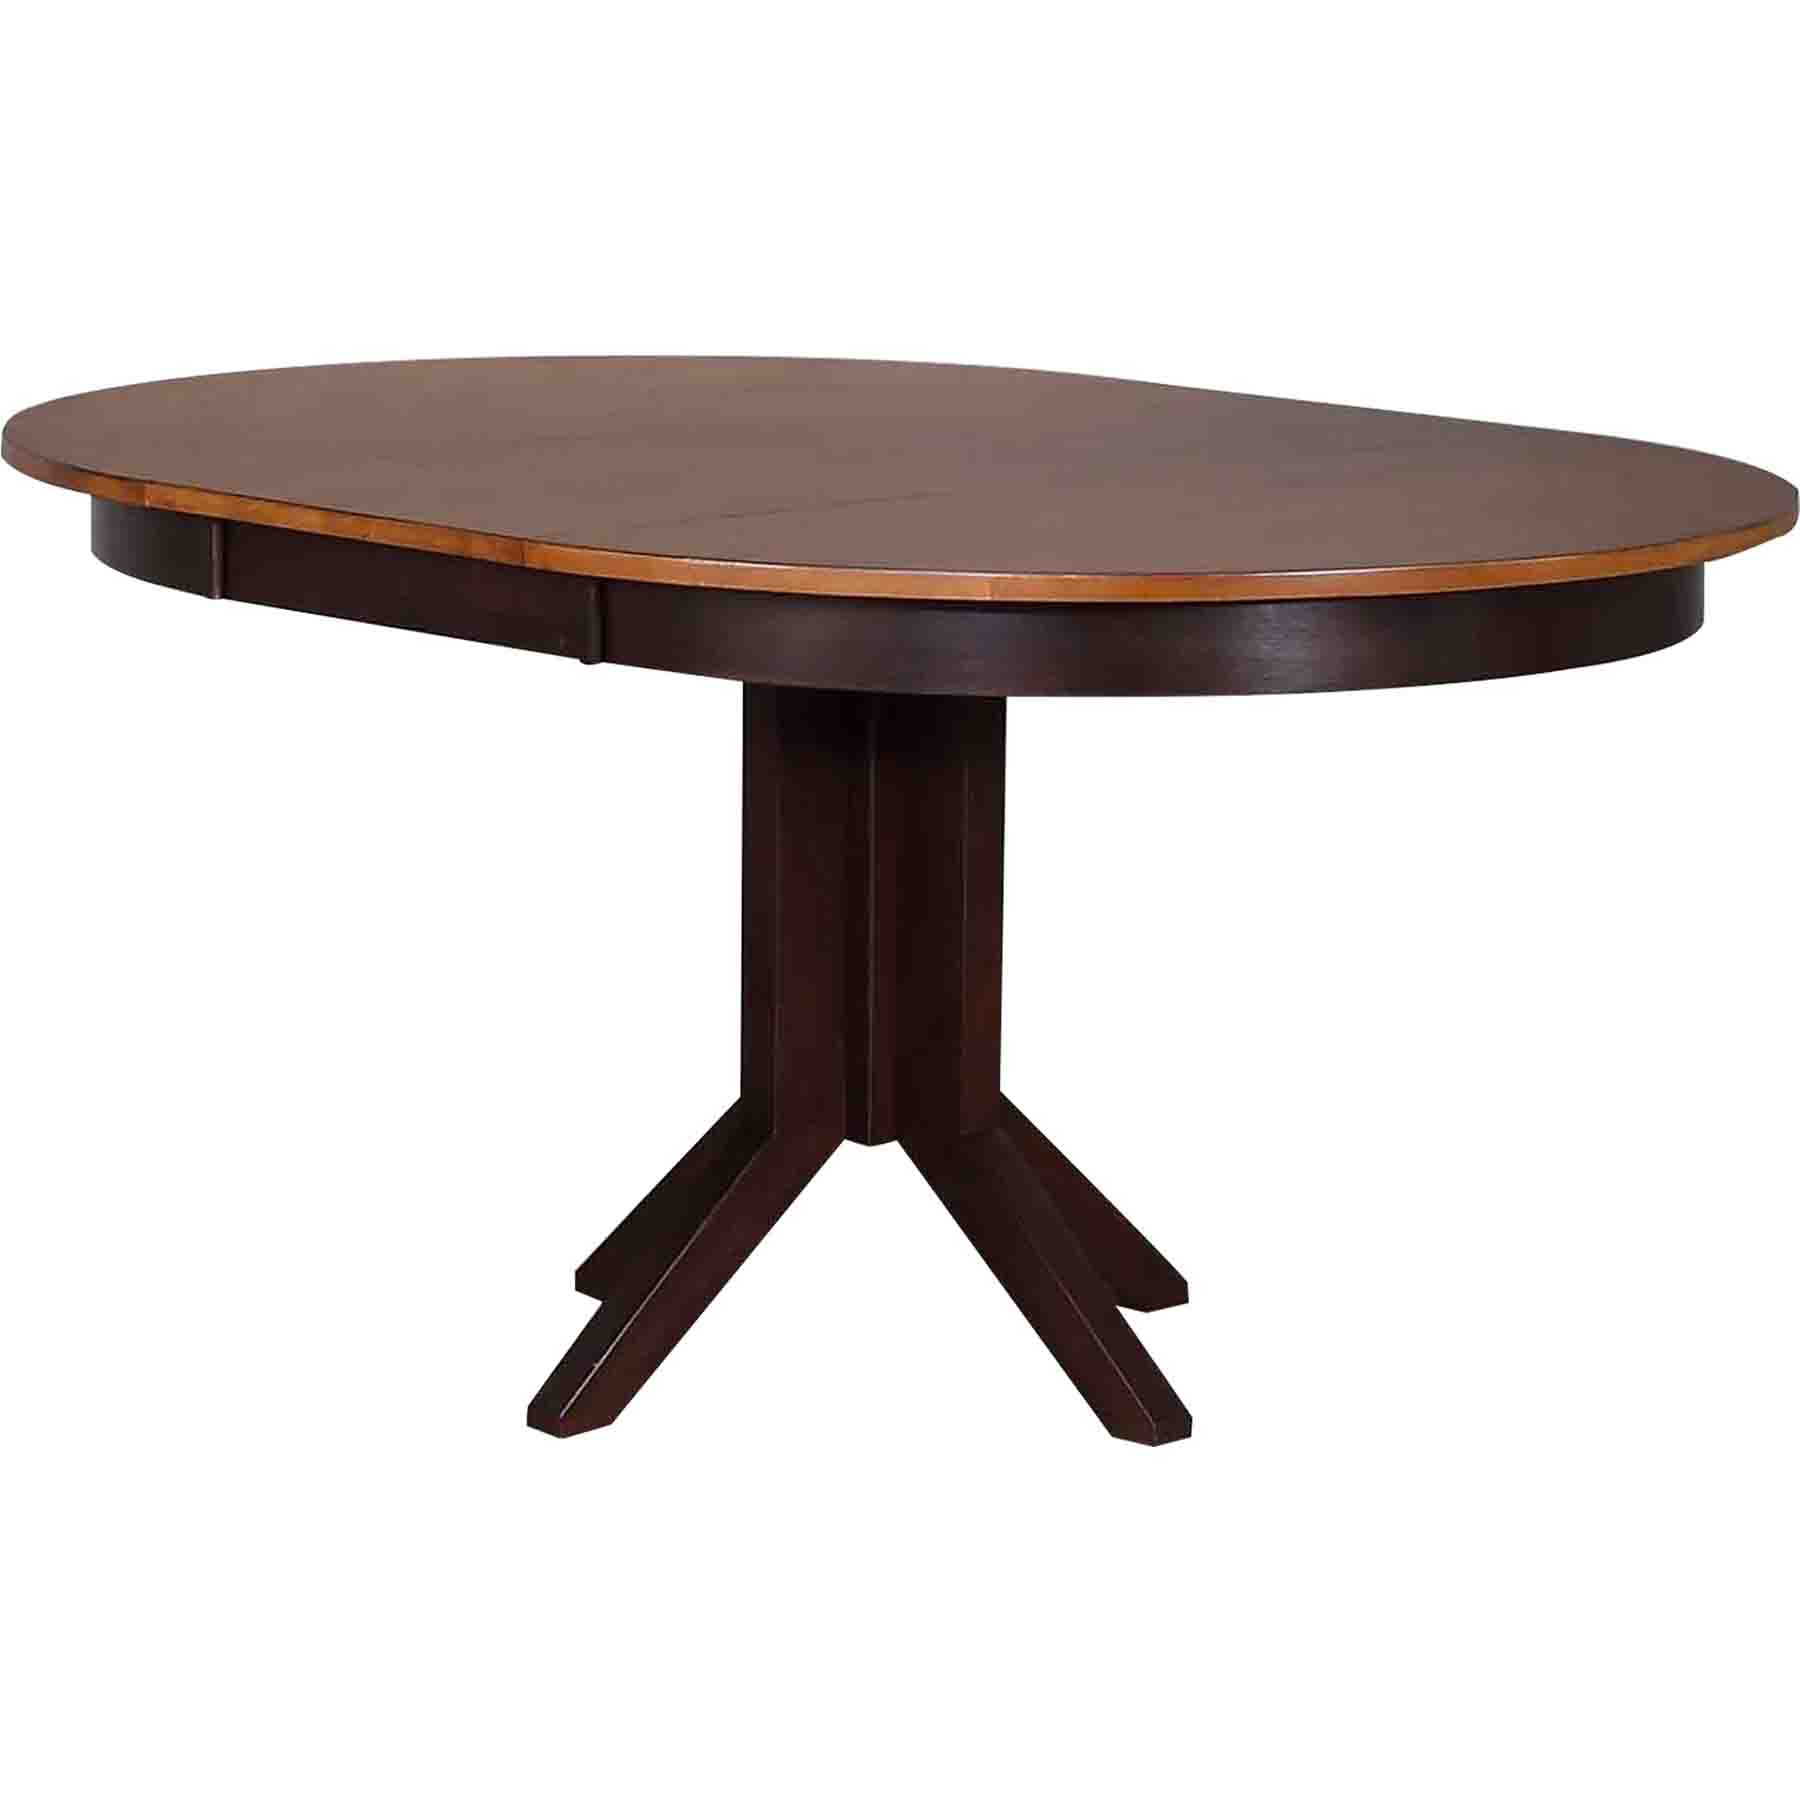 Round Contemporary Dining Table Whiskey and Mocha DCG  : rd45 wy ma con from www.dcgstores.com size 1800 x 1800 jpeg 37kB